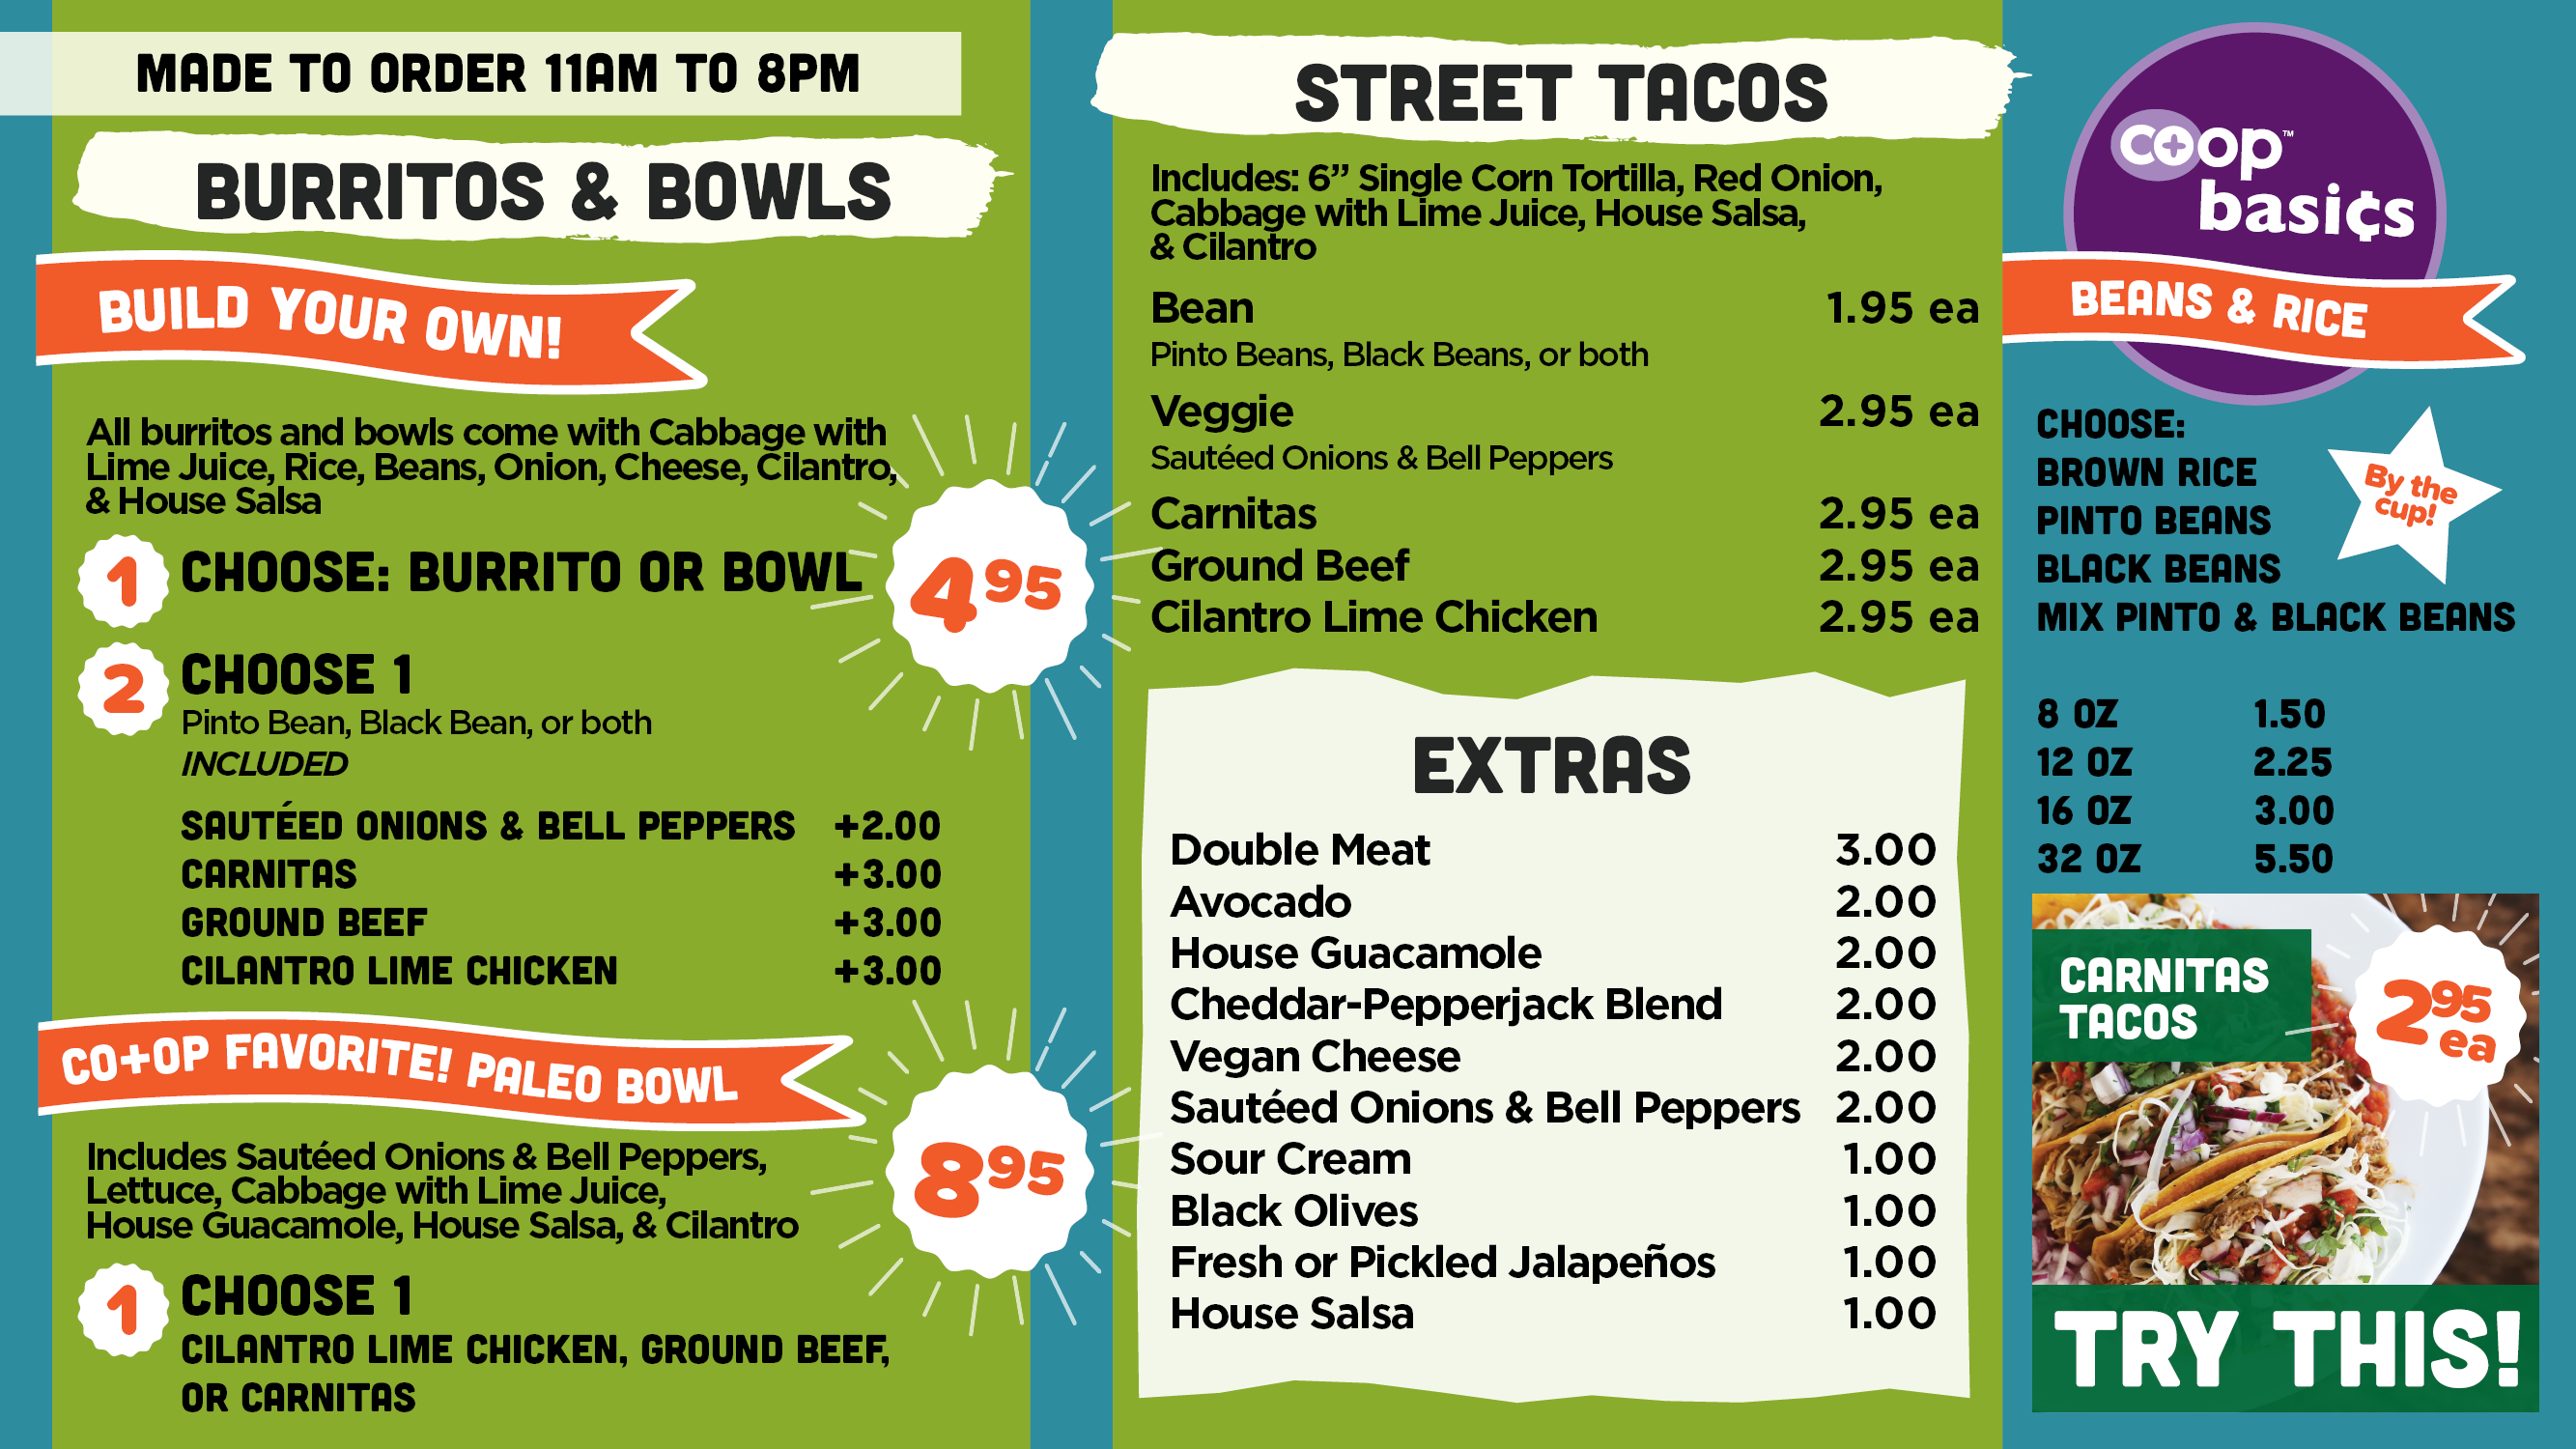 AFC Made to Order Burrito and Taco menu